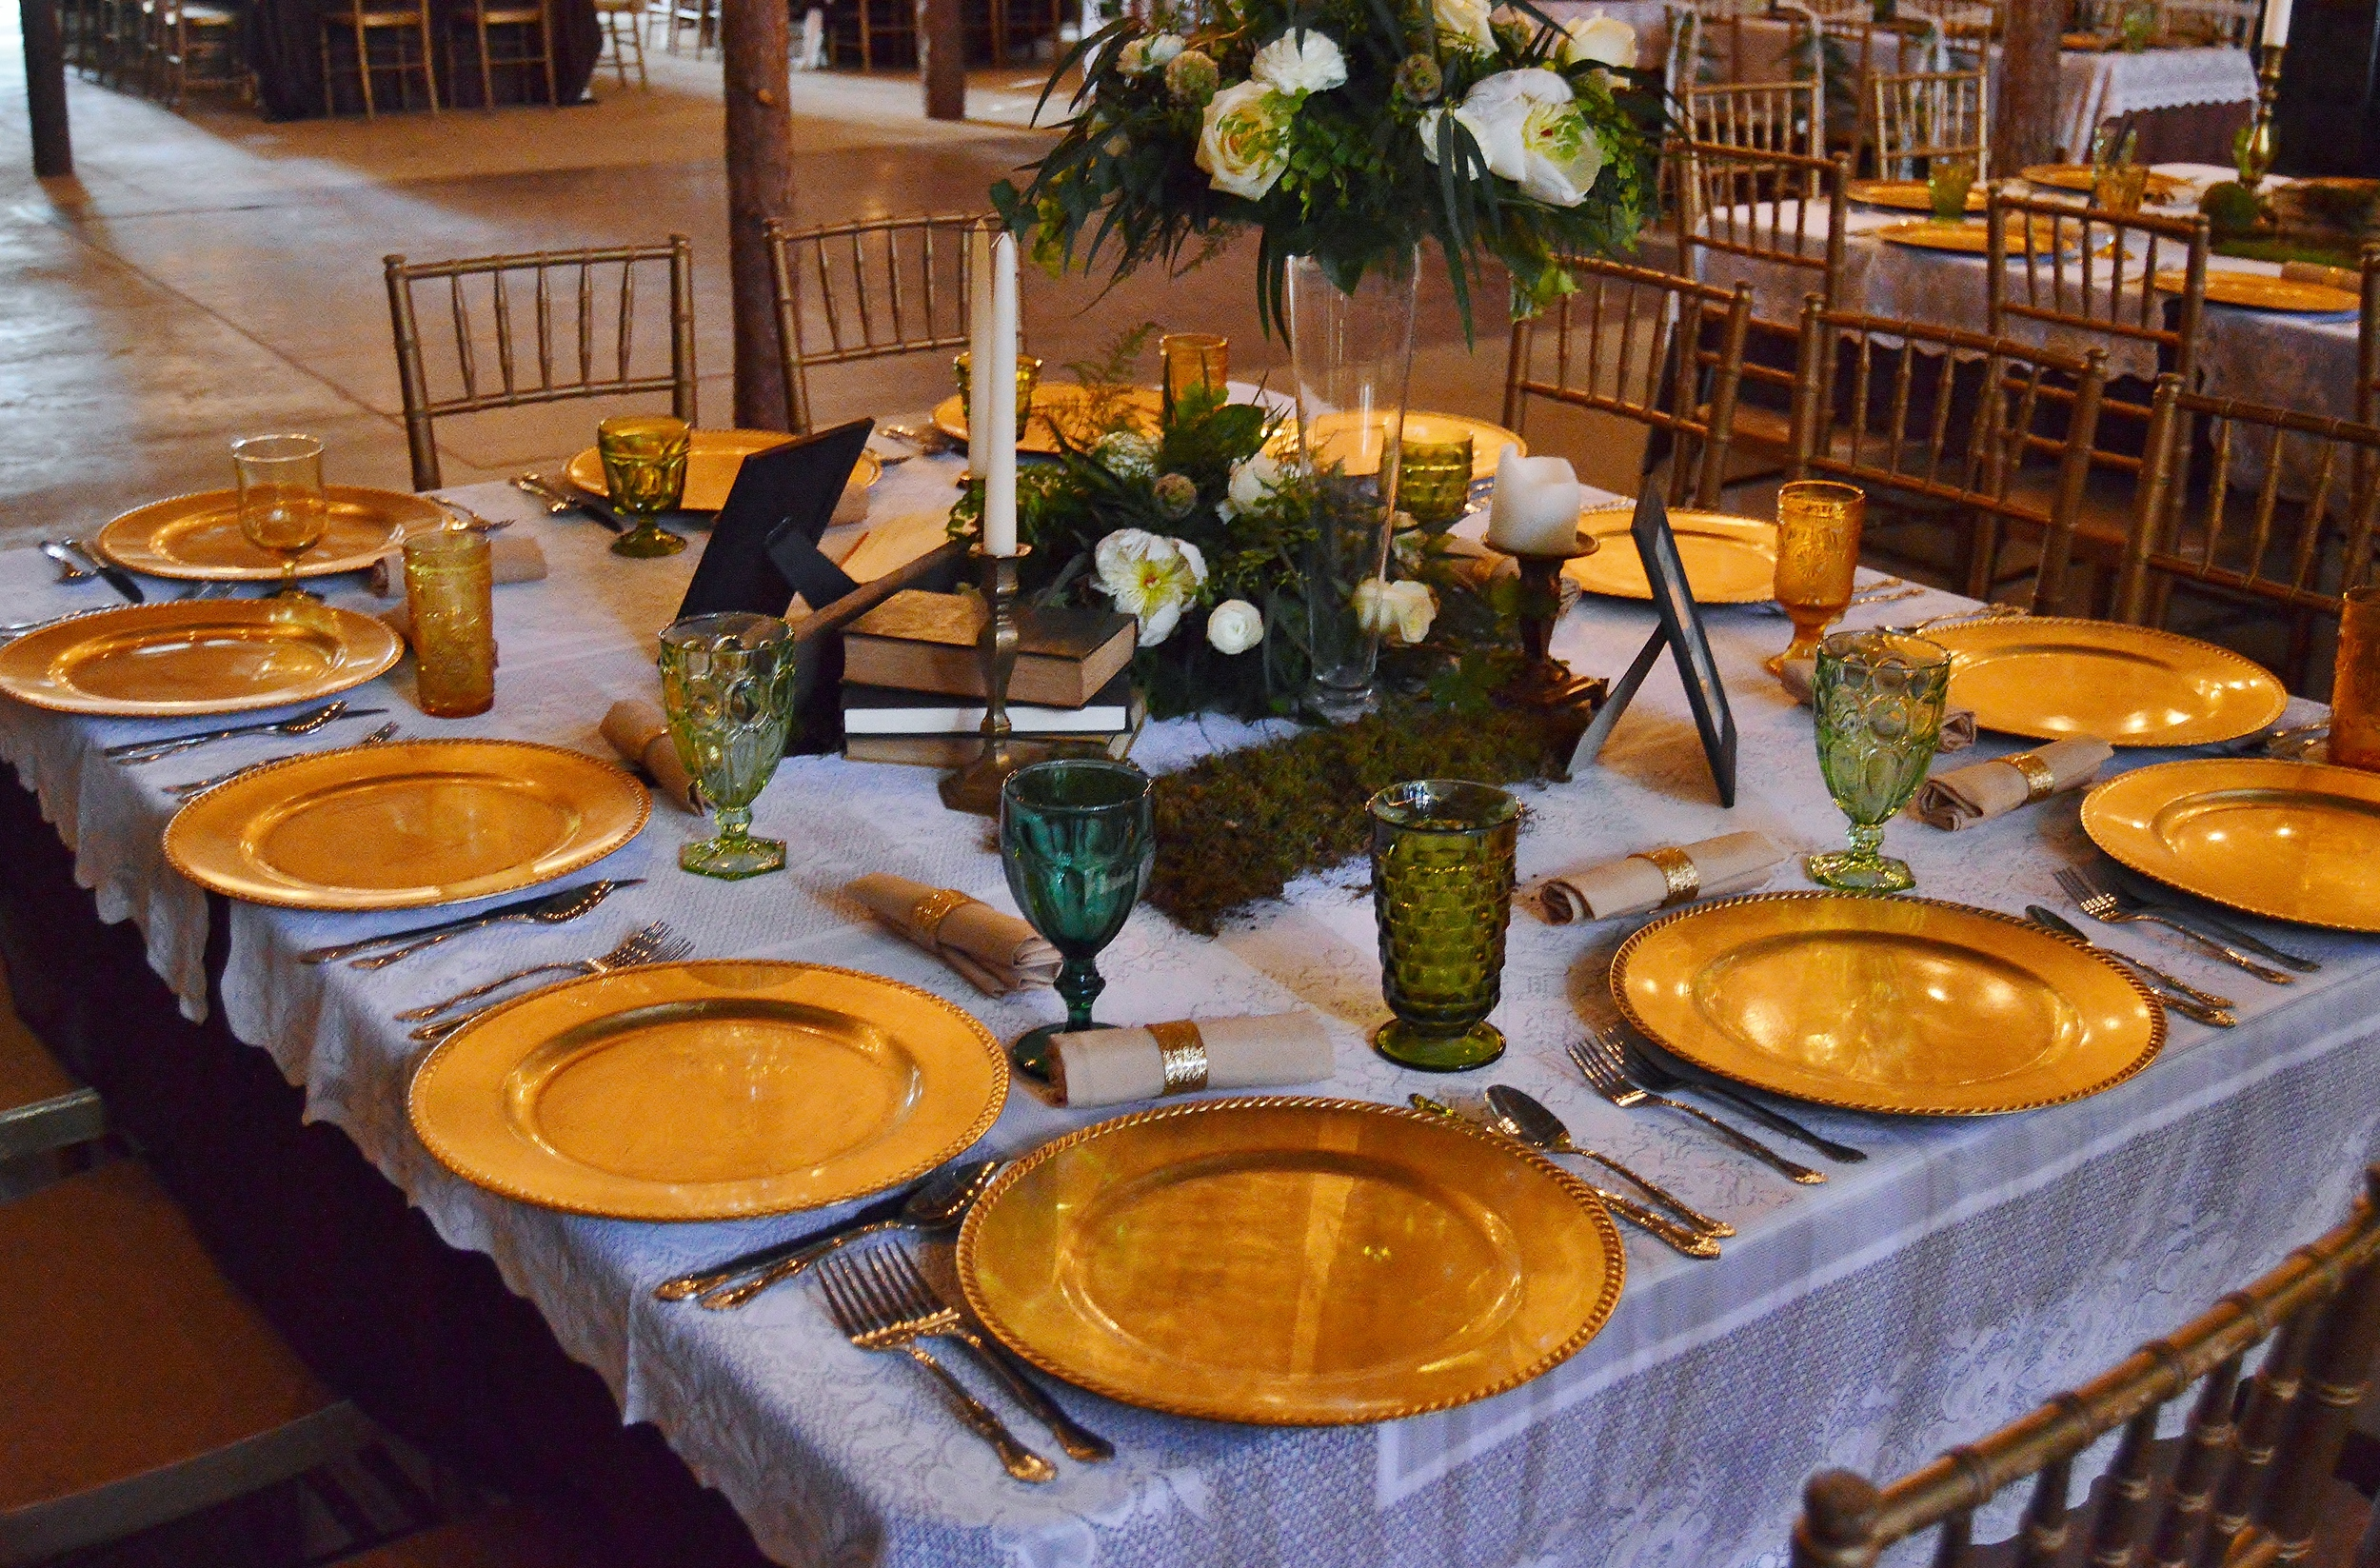 Their place settings were gorgeous! This mismatched glassware... swoon!